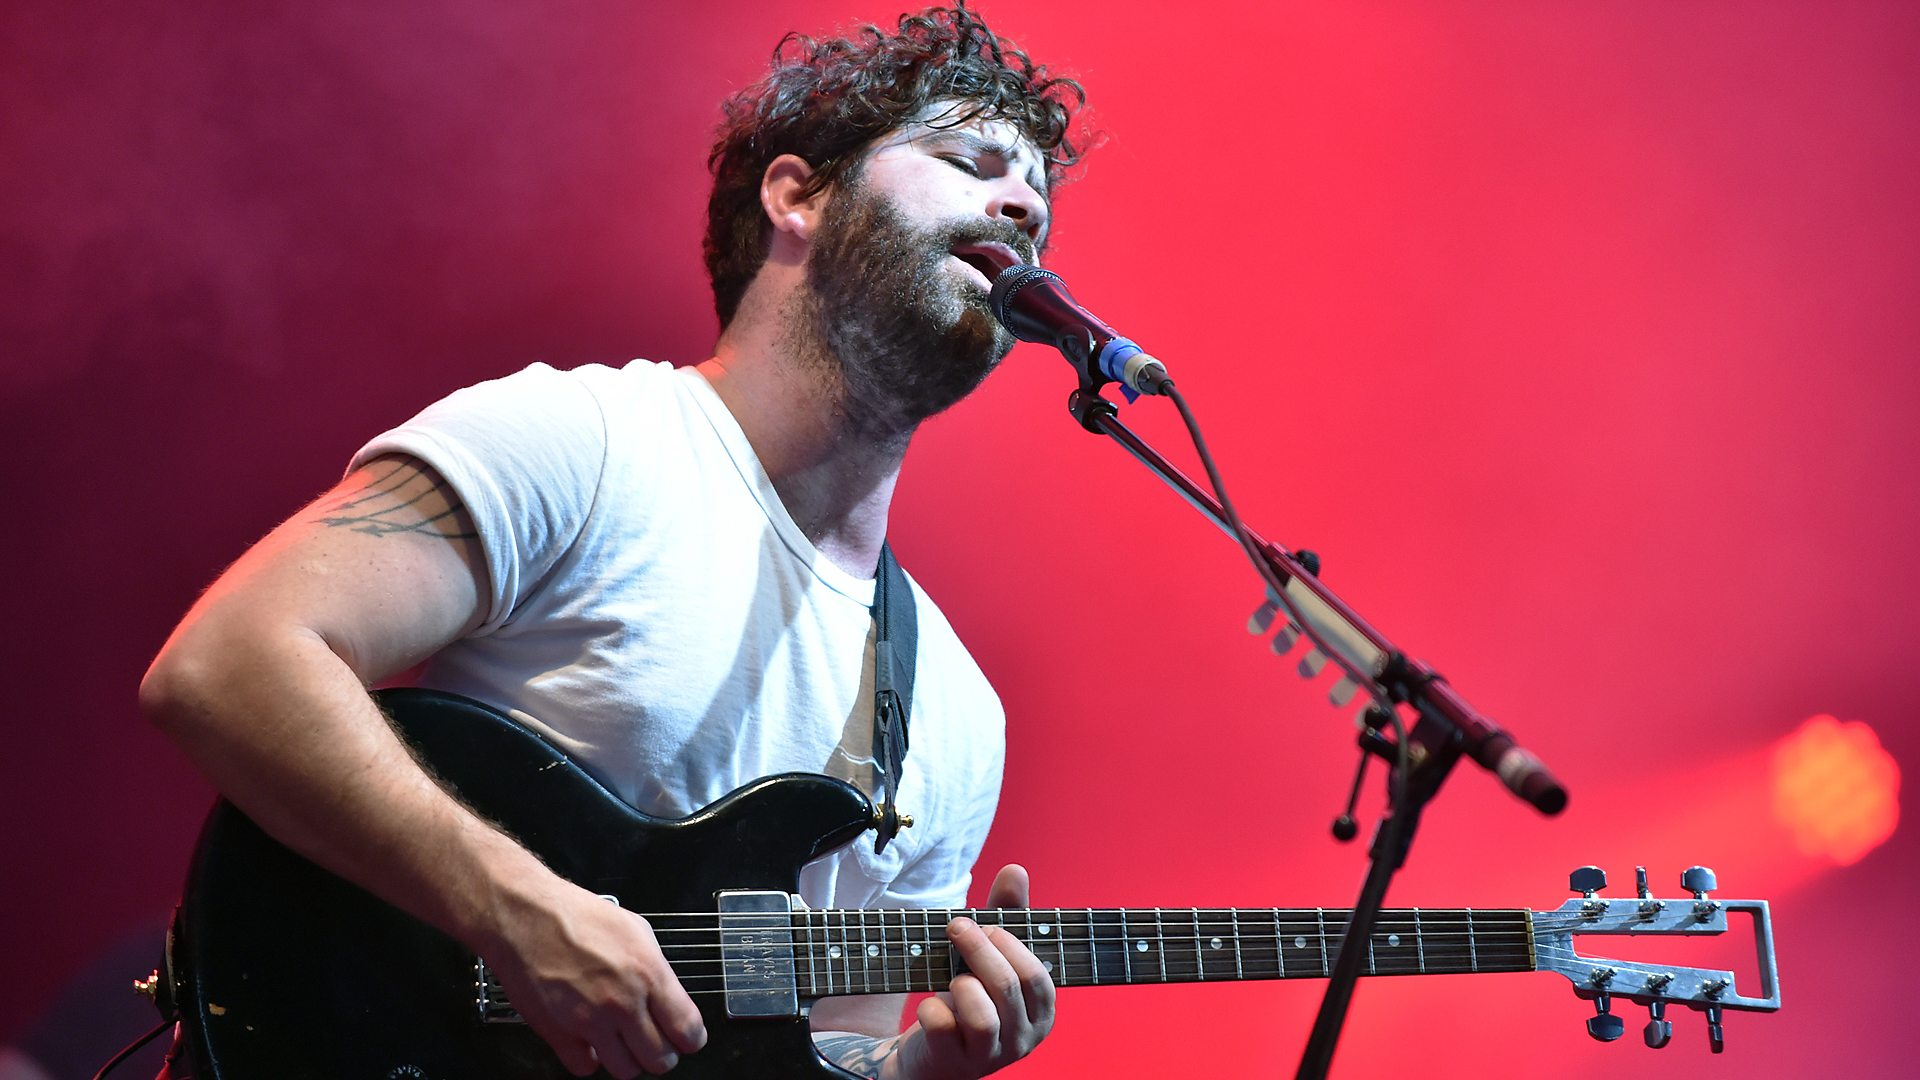 BBC Music - Reading and Leeds Festival, 2016 - Foals at